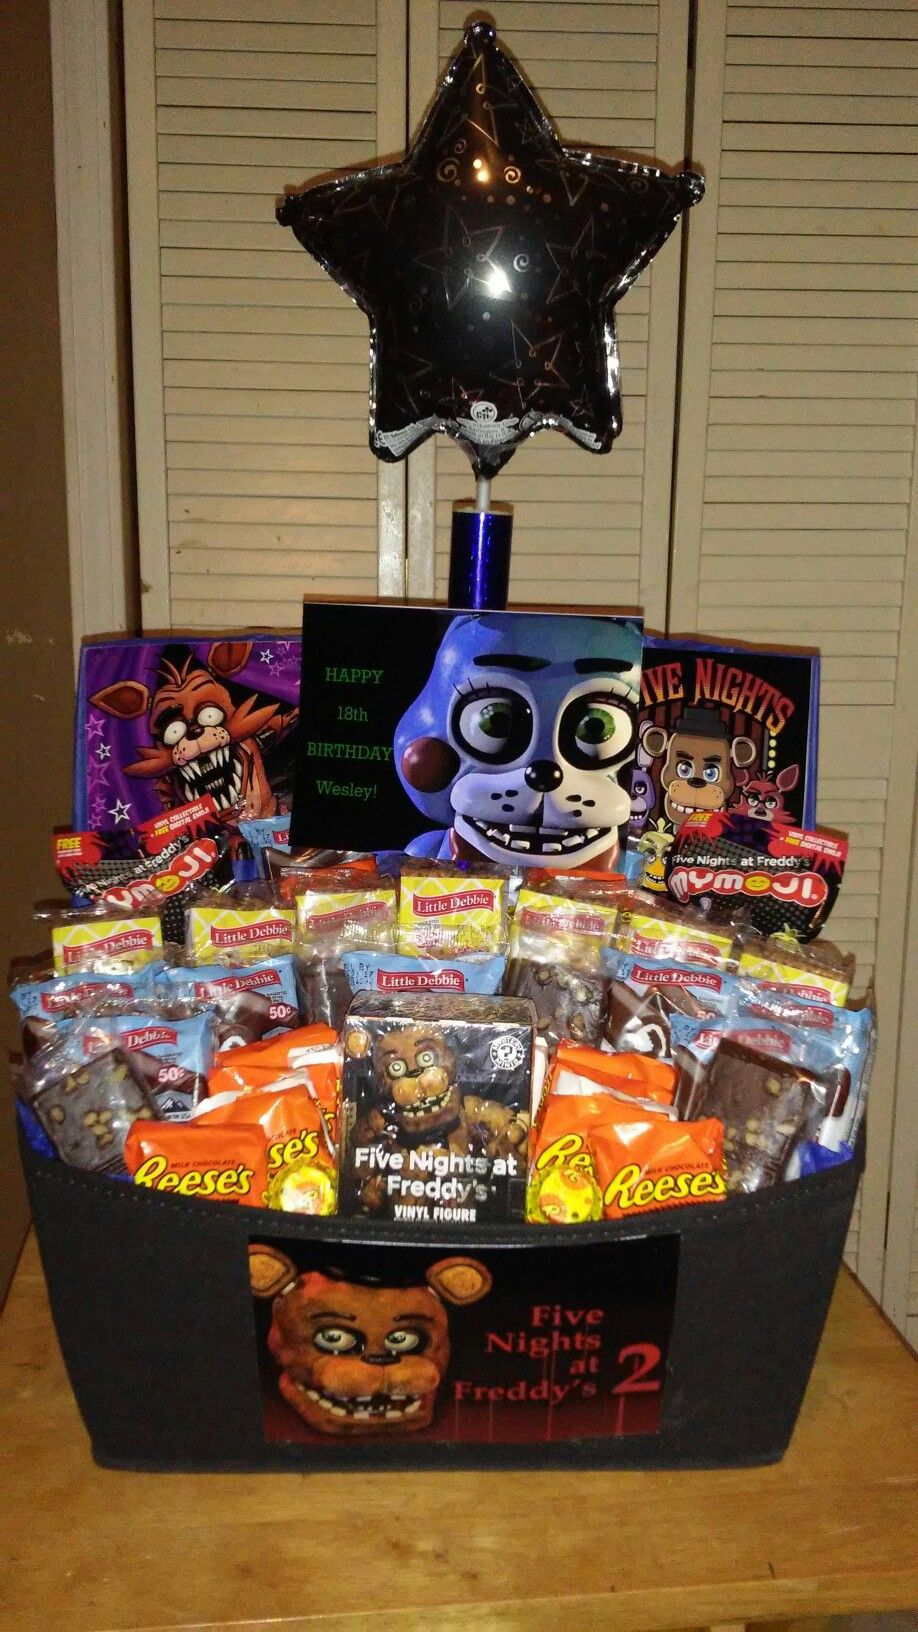 Five nights at freddys gift basket with little debbie